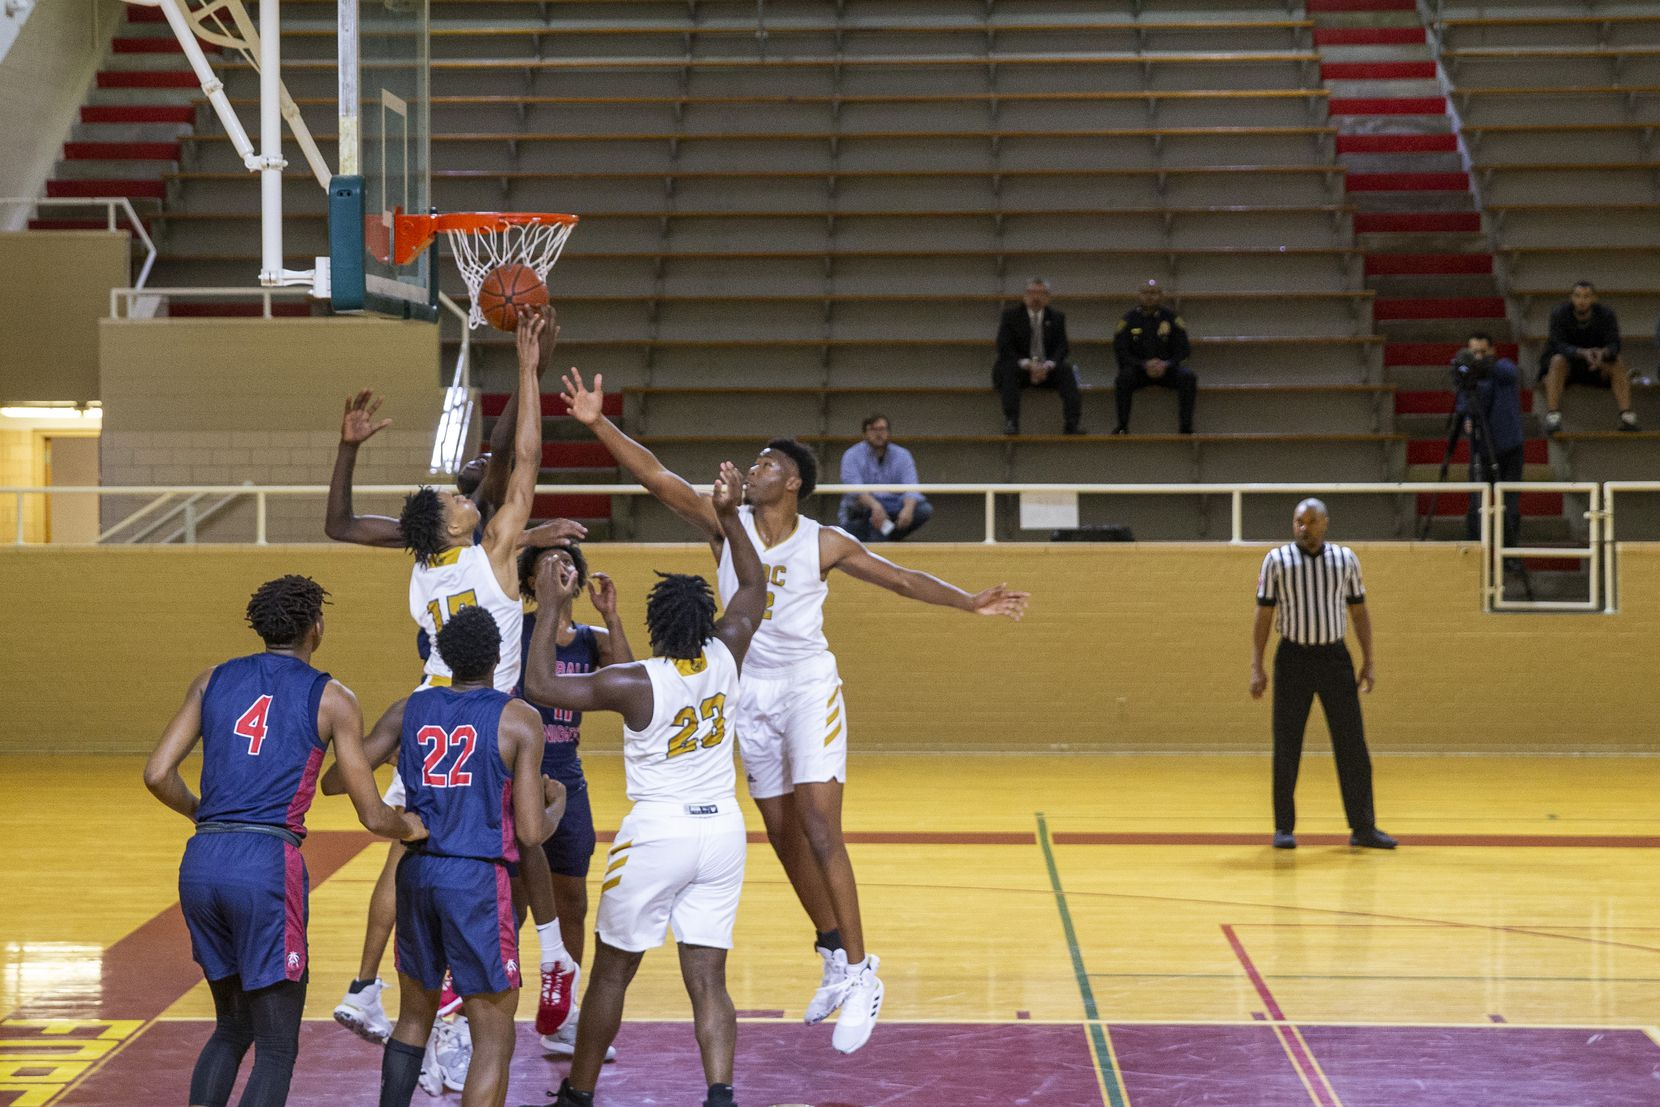 The resumption of the boys basketball game between South Oak Cliff and Kimball plays out before a sparse audience inside the Herschel Forester Field House in Dallas on Monday, Jan. 13, 2020. The game was suspended Saturday because of a shooting, and only a select few guests were allowed to attend the resumed game.